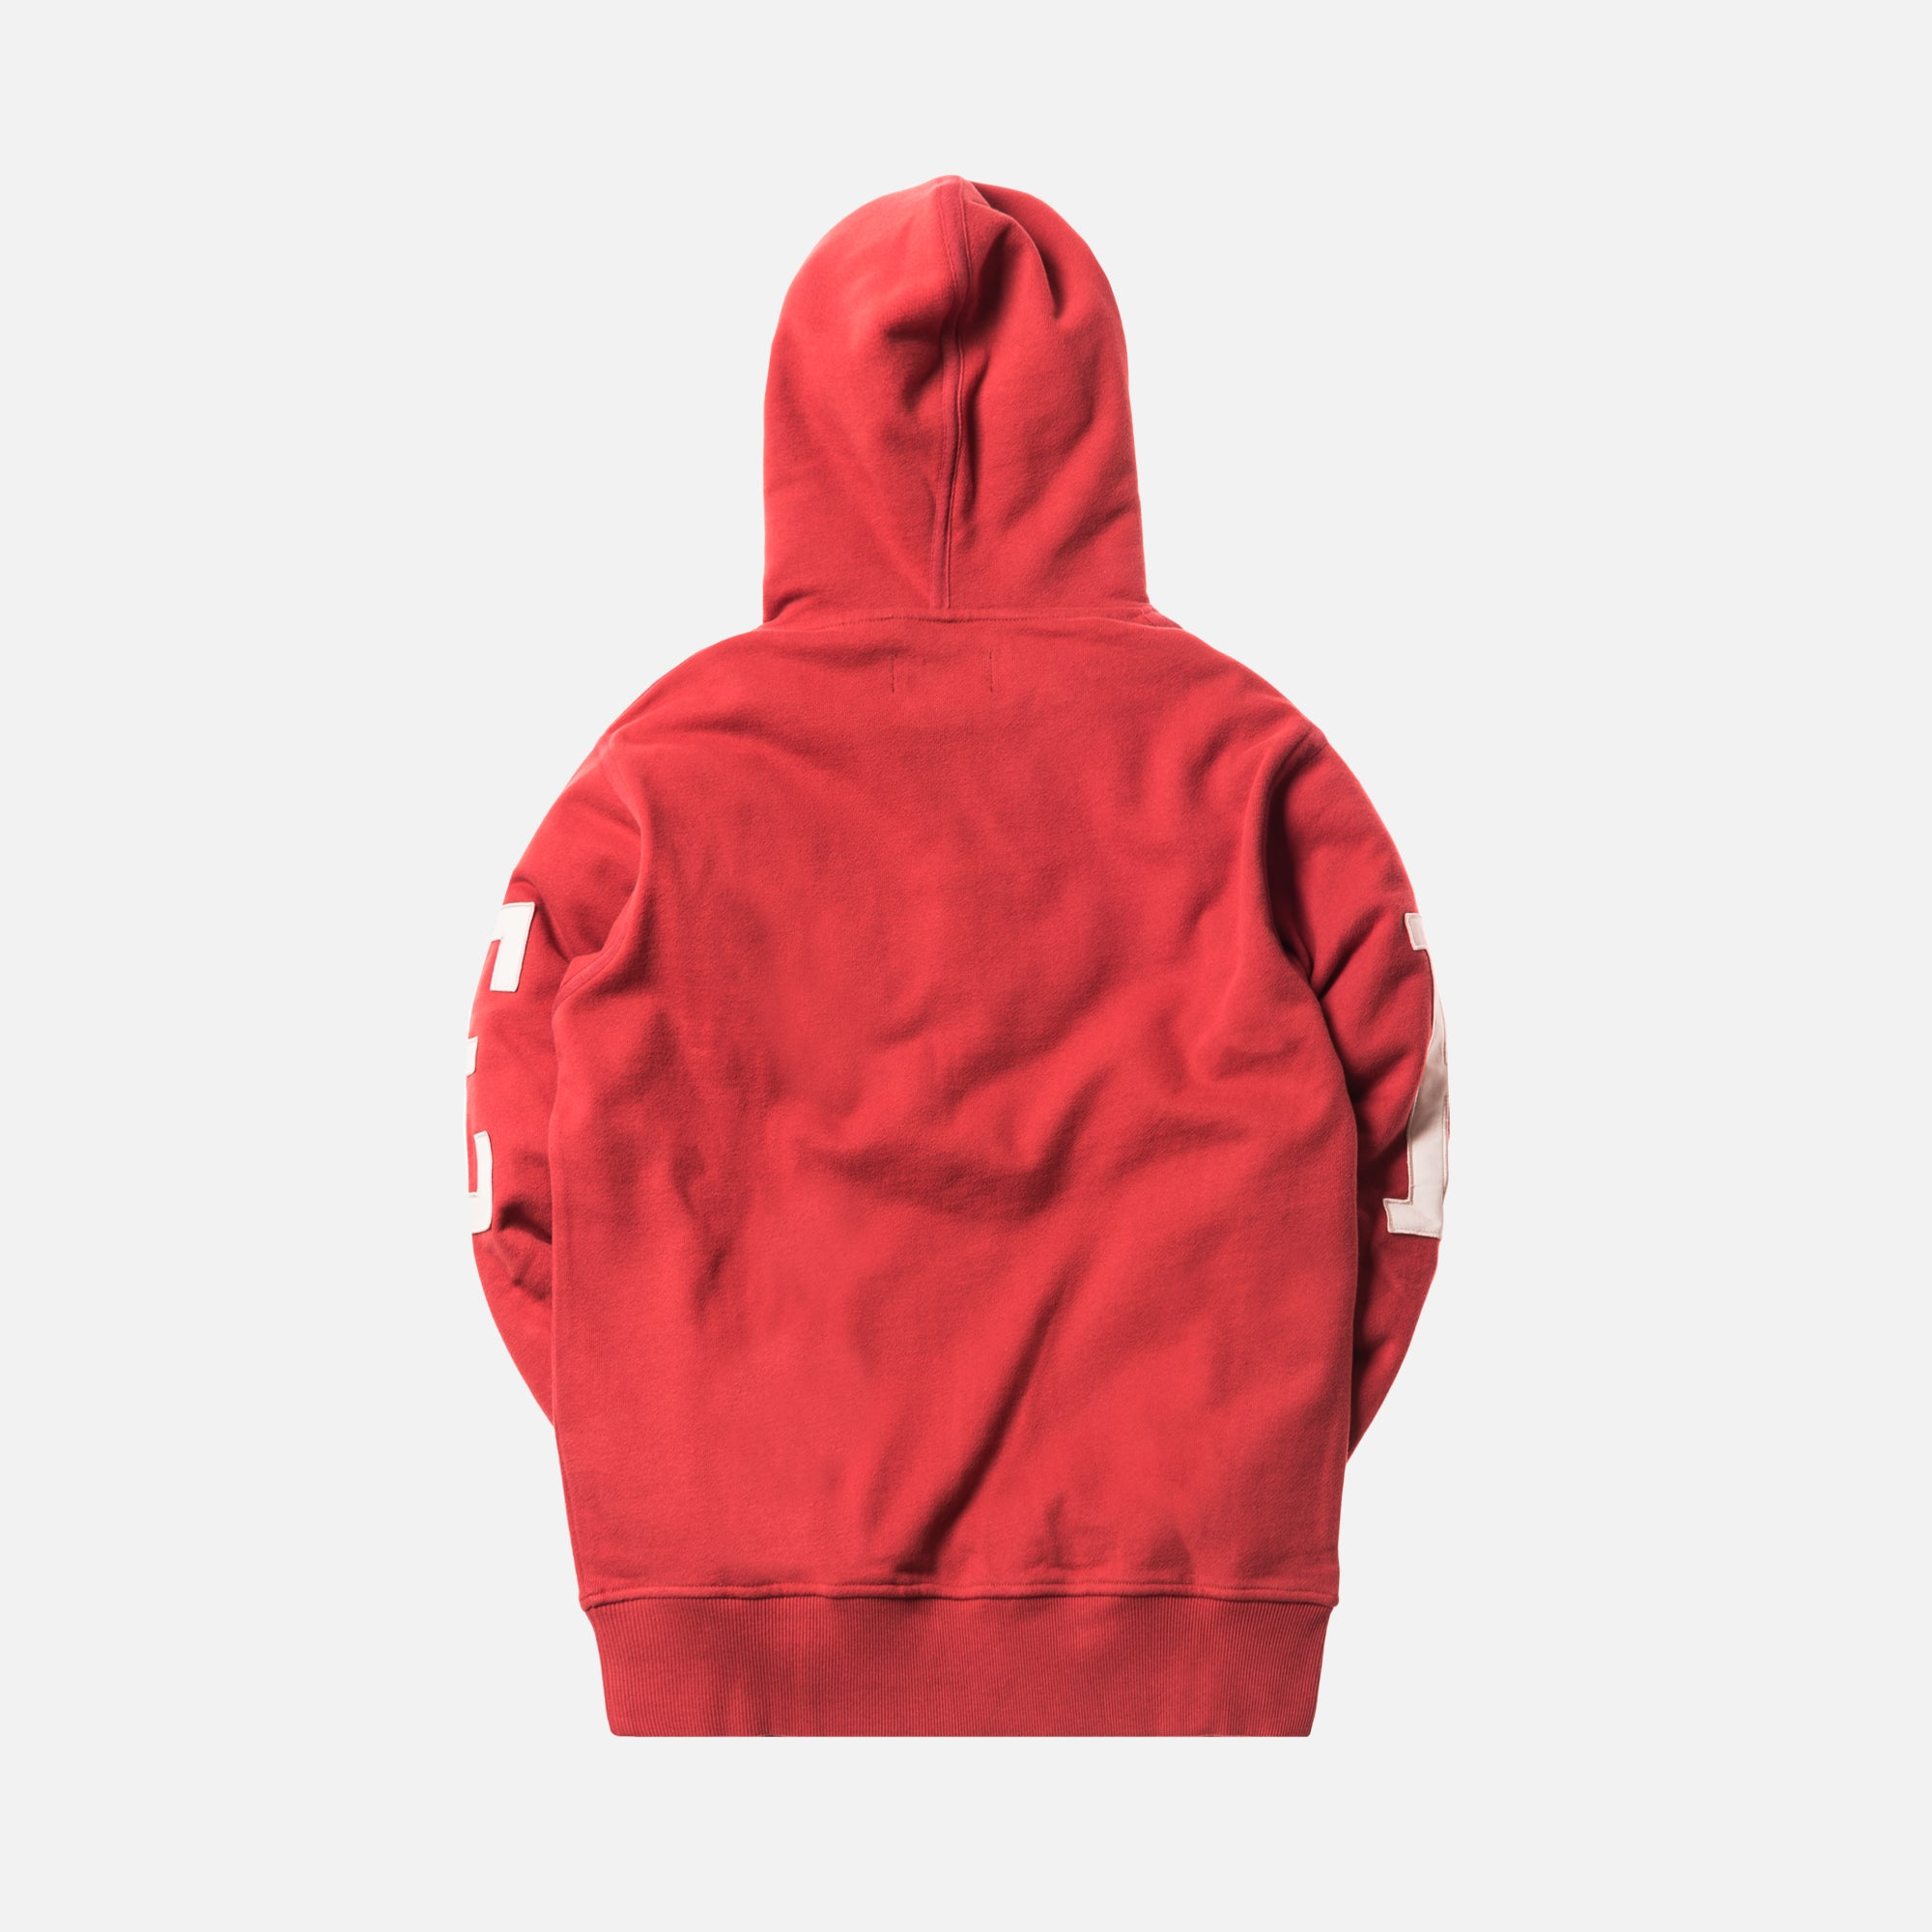 Kith US Fake Friends Hoodie - Red